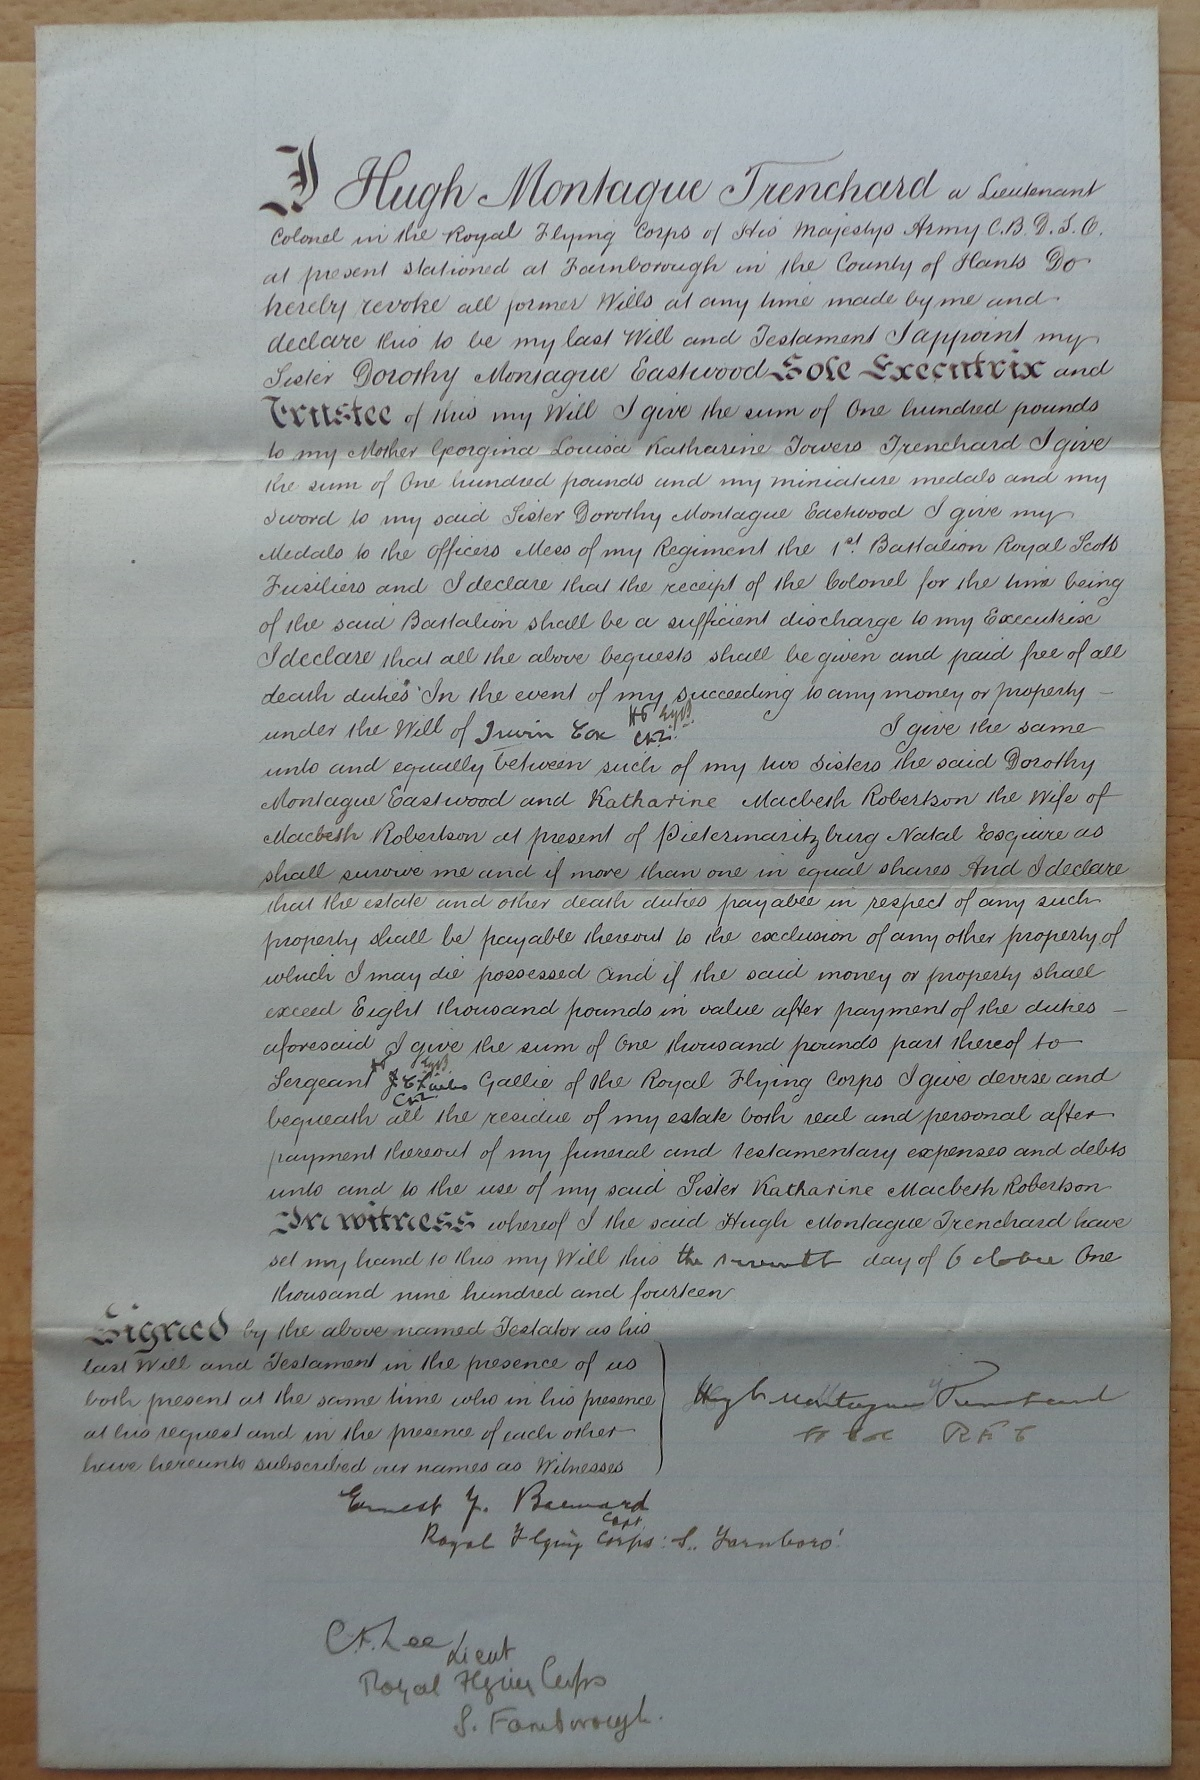 Marshal of the Royal Air Force Hugh Montague Trenchard, 1st Viscount Trenchard signed Last Will